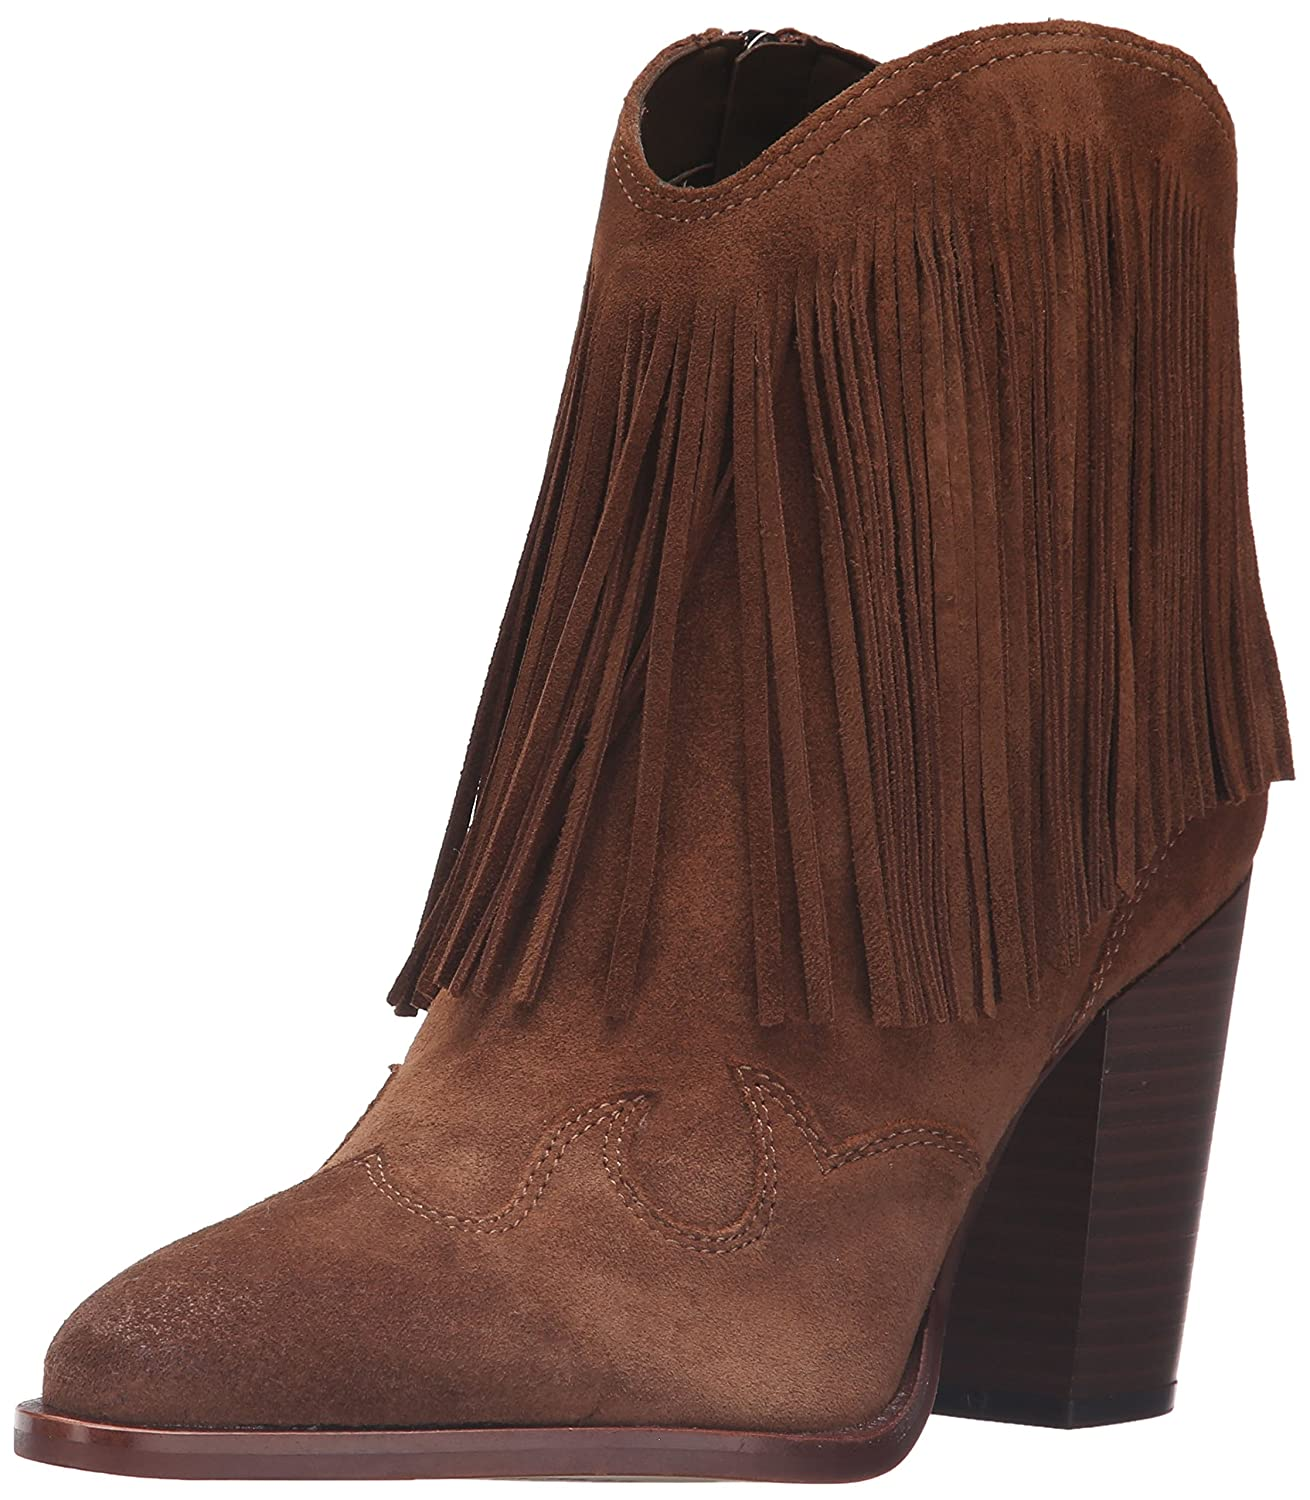 Sam Edelman Women's Benjie Ankle Bootie B01AX9BHDG 7.5 B(M) US|Woodland Brown